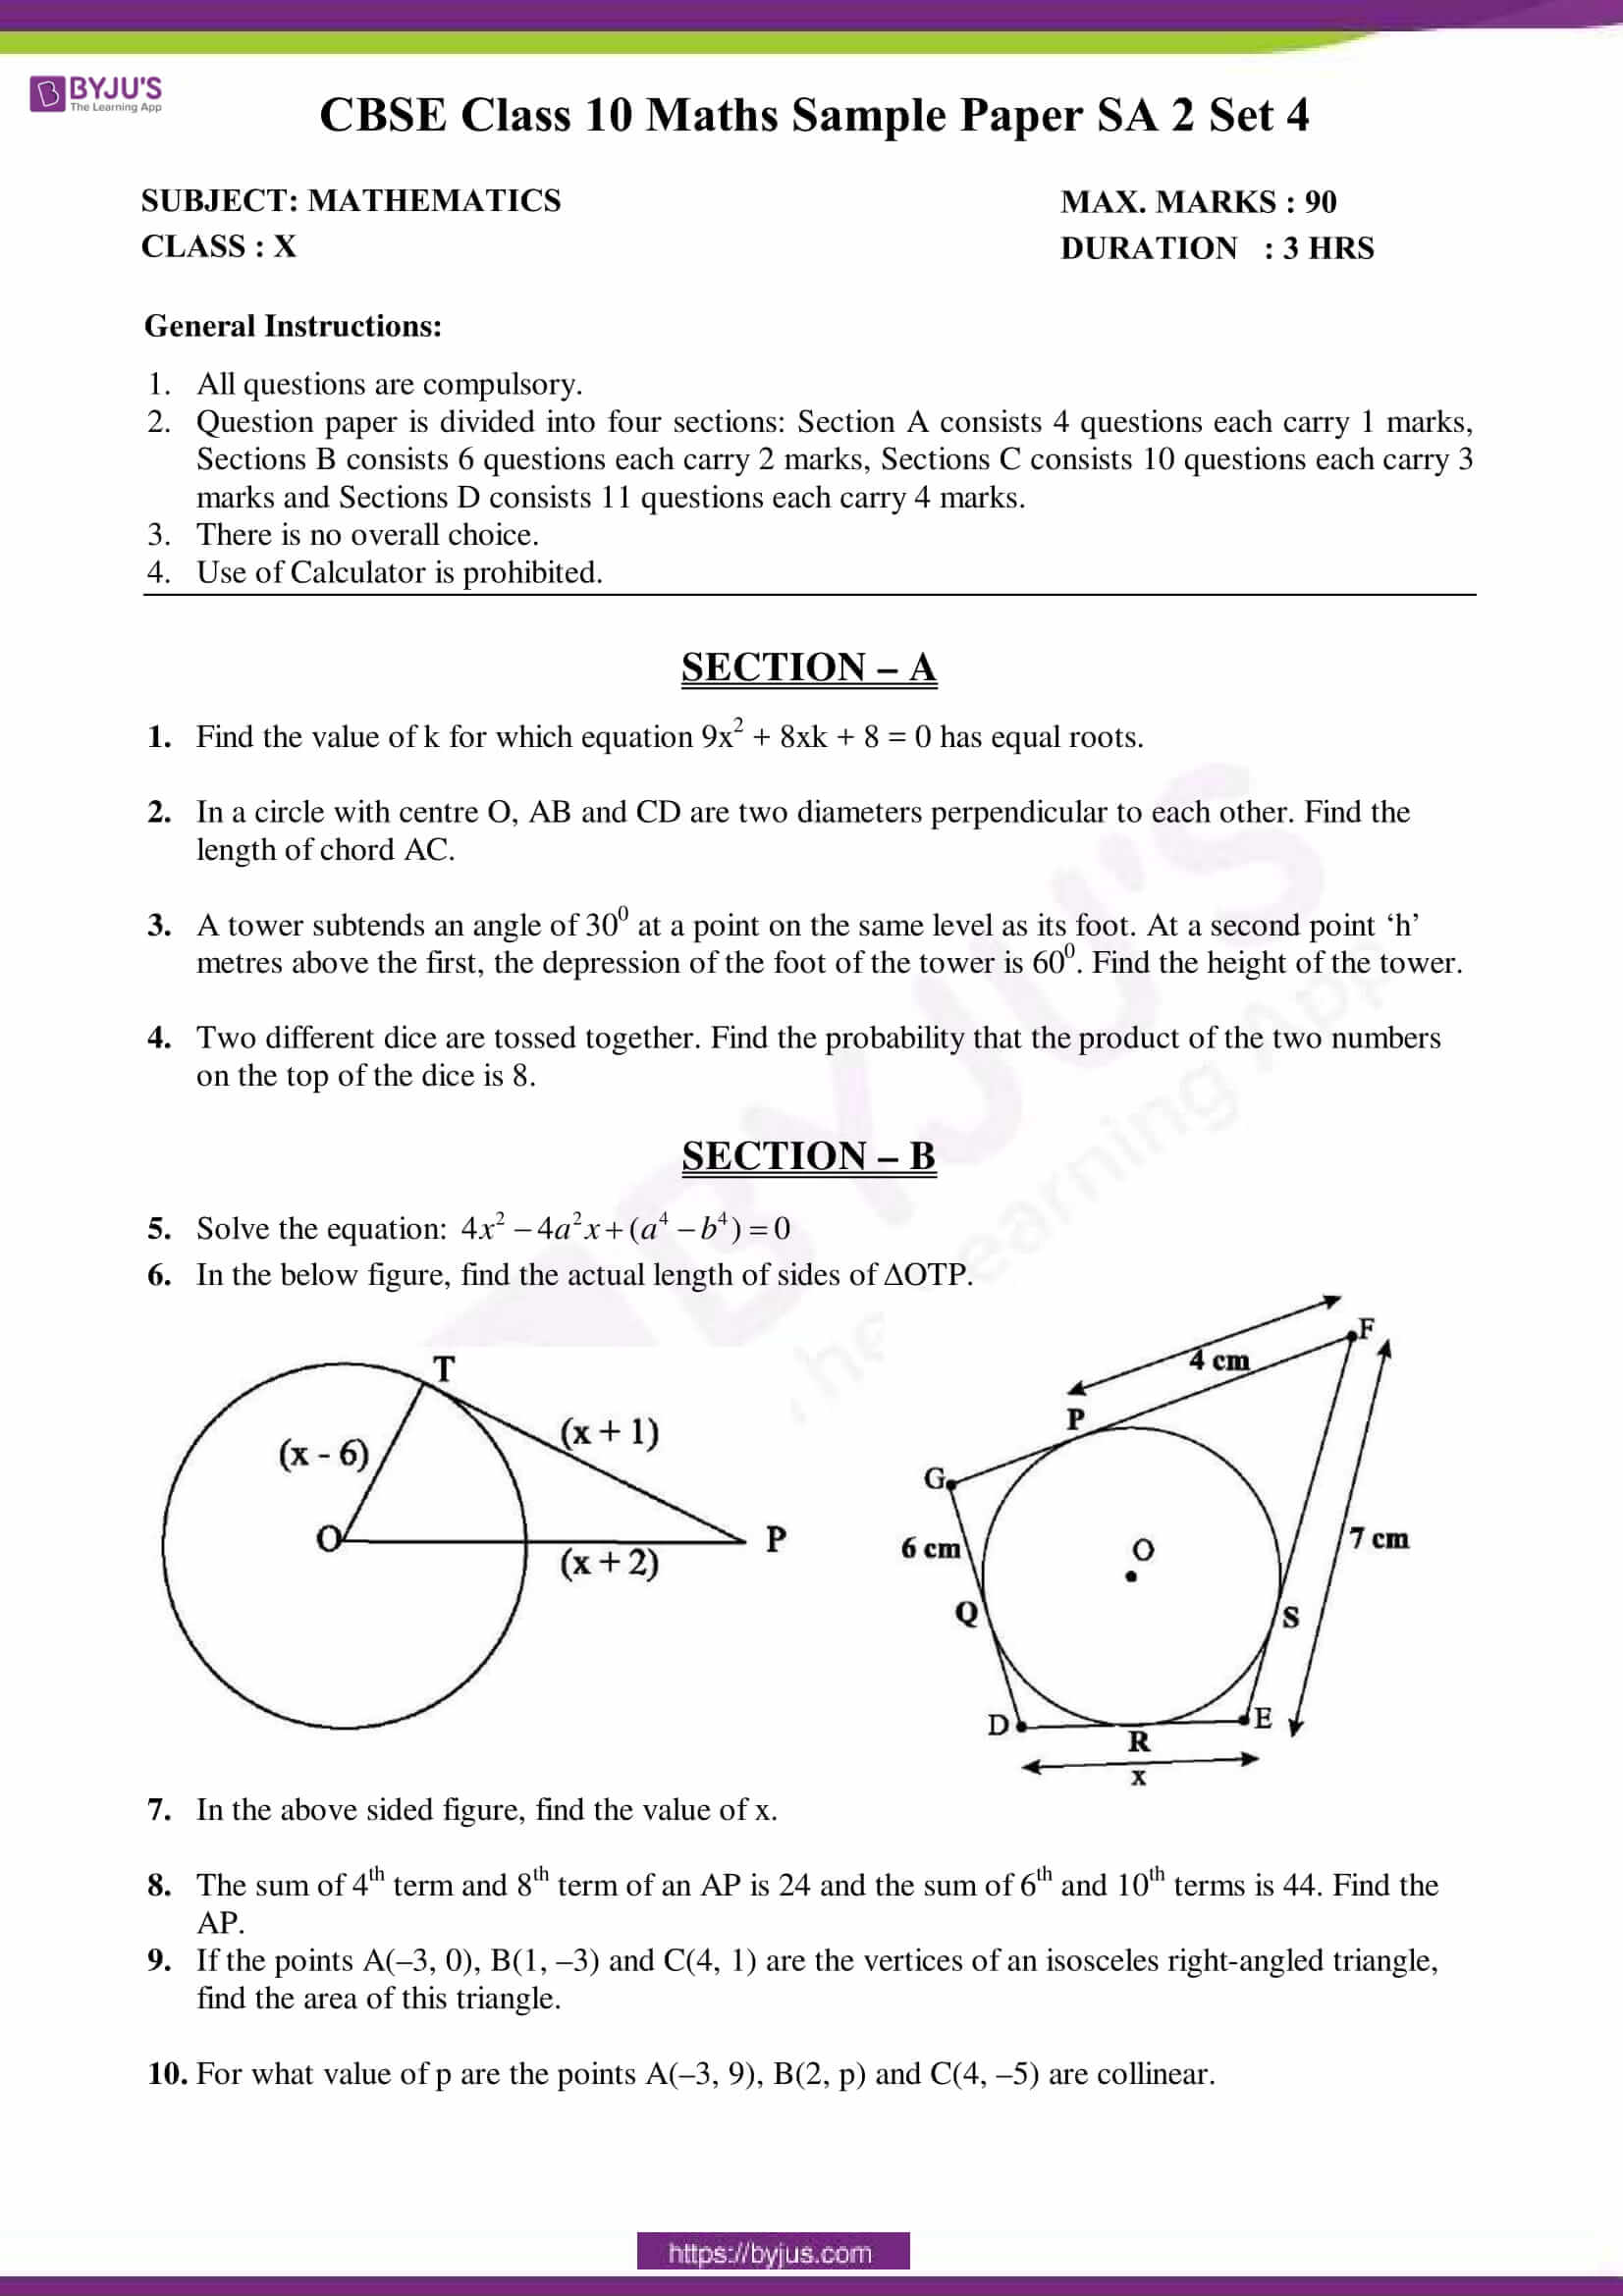 cbse sample paper class 10 maths sa 2 set 4